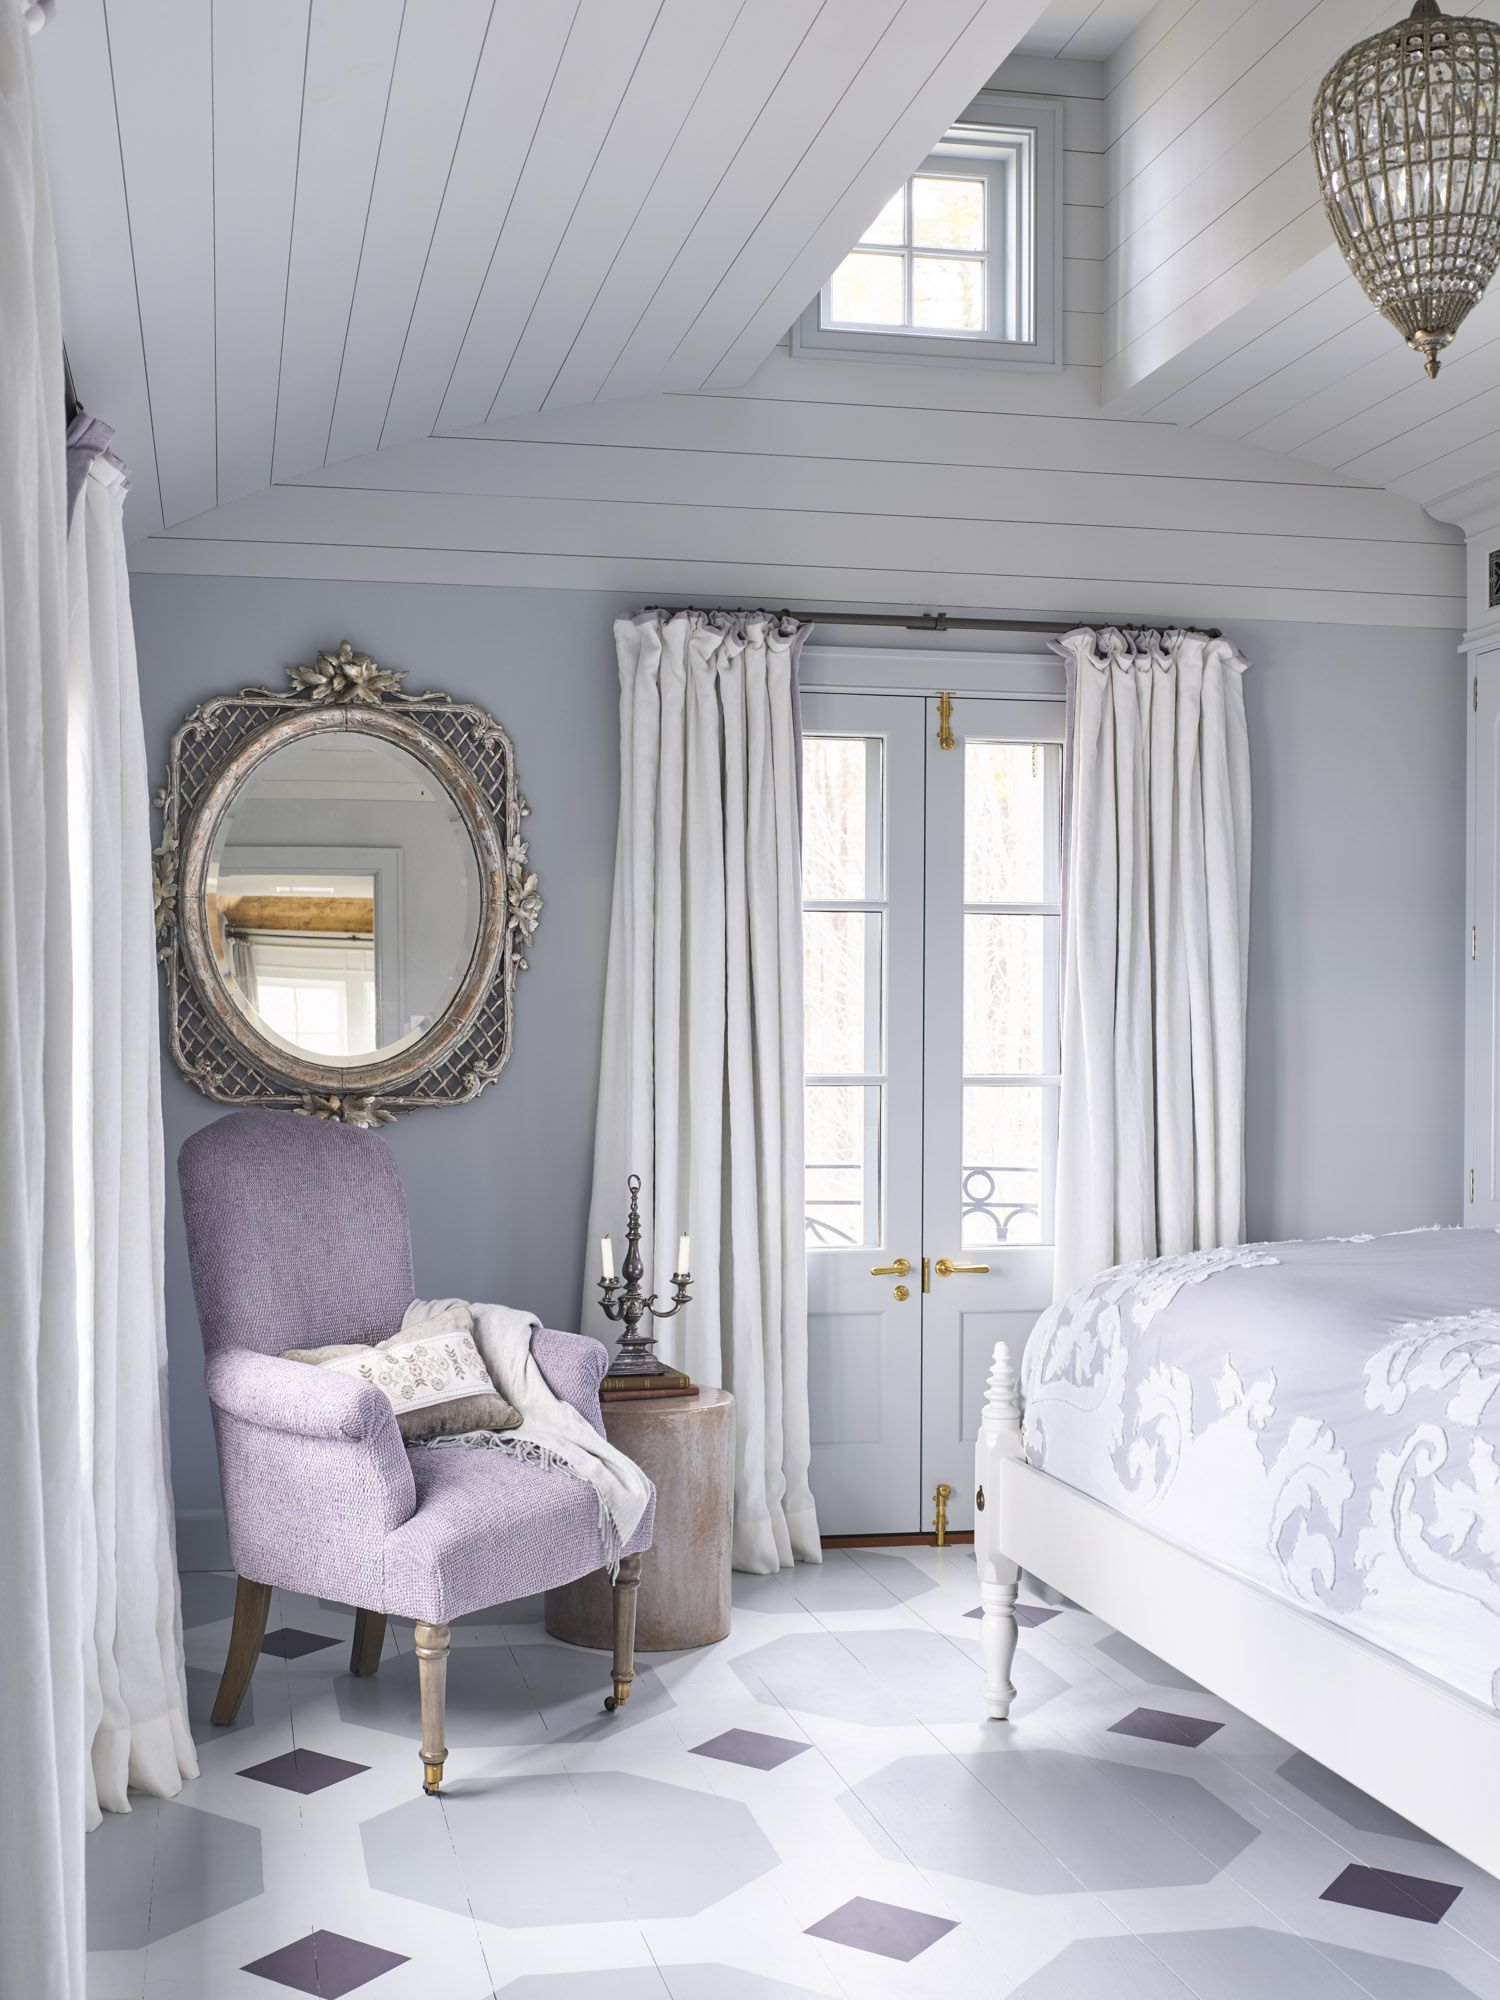 Modern Room Designs And Colors: 24 Lovely Bedroom Colors That'll Make You Wake Up Happier